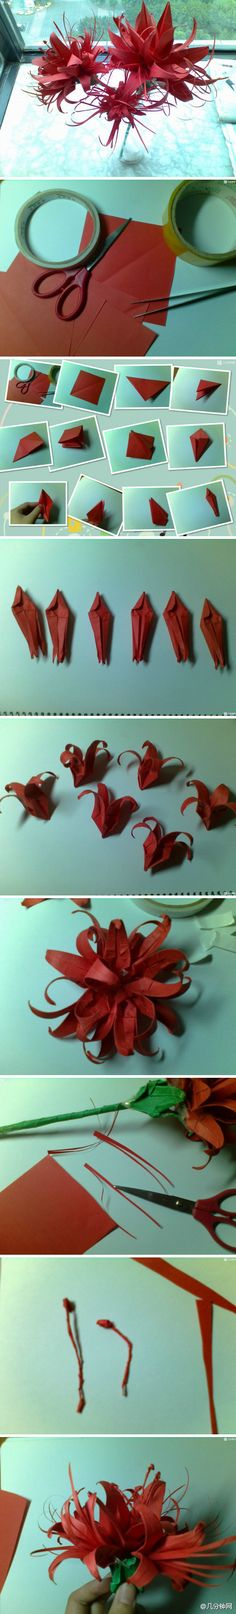 Origami spiderlily/lycoris flower. The pin image is the entirety of the tutorial but it looks pretty easy as long as you can fold a crane.